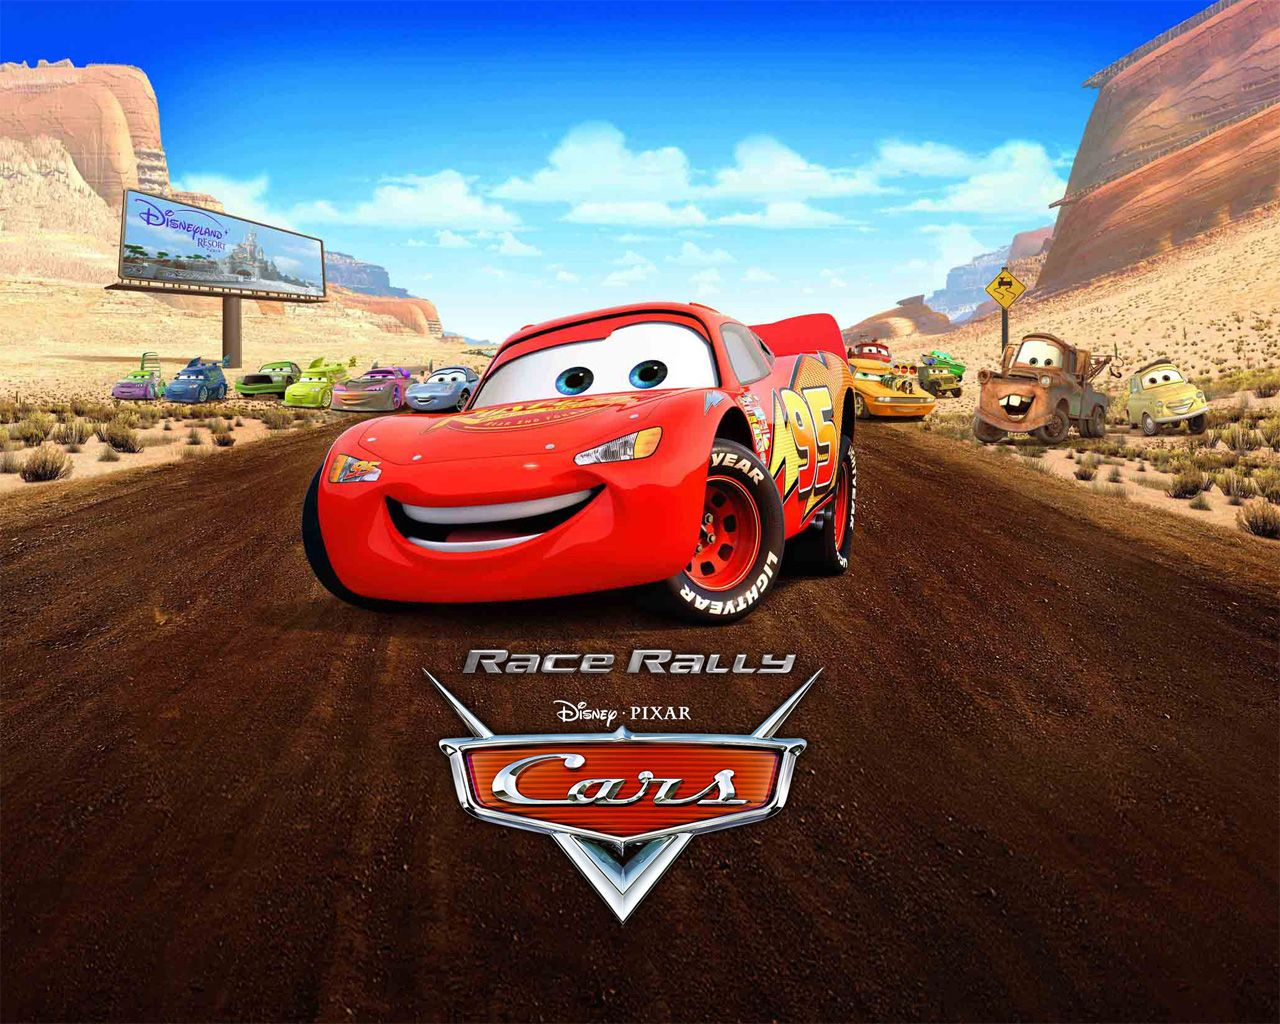 While more fans cheered outside lightning mcqueen the for Disney pixar cars mural wallpaper